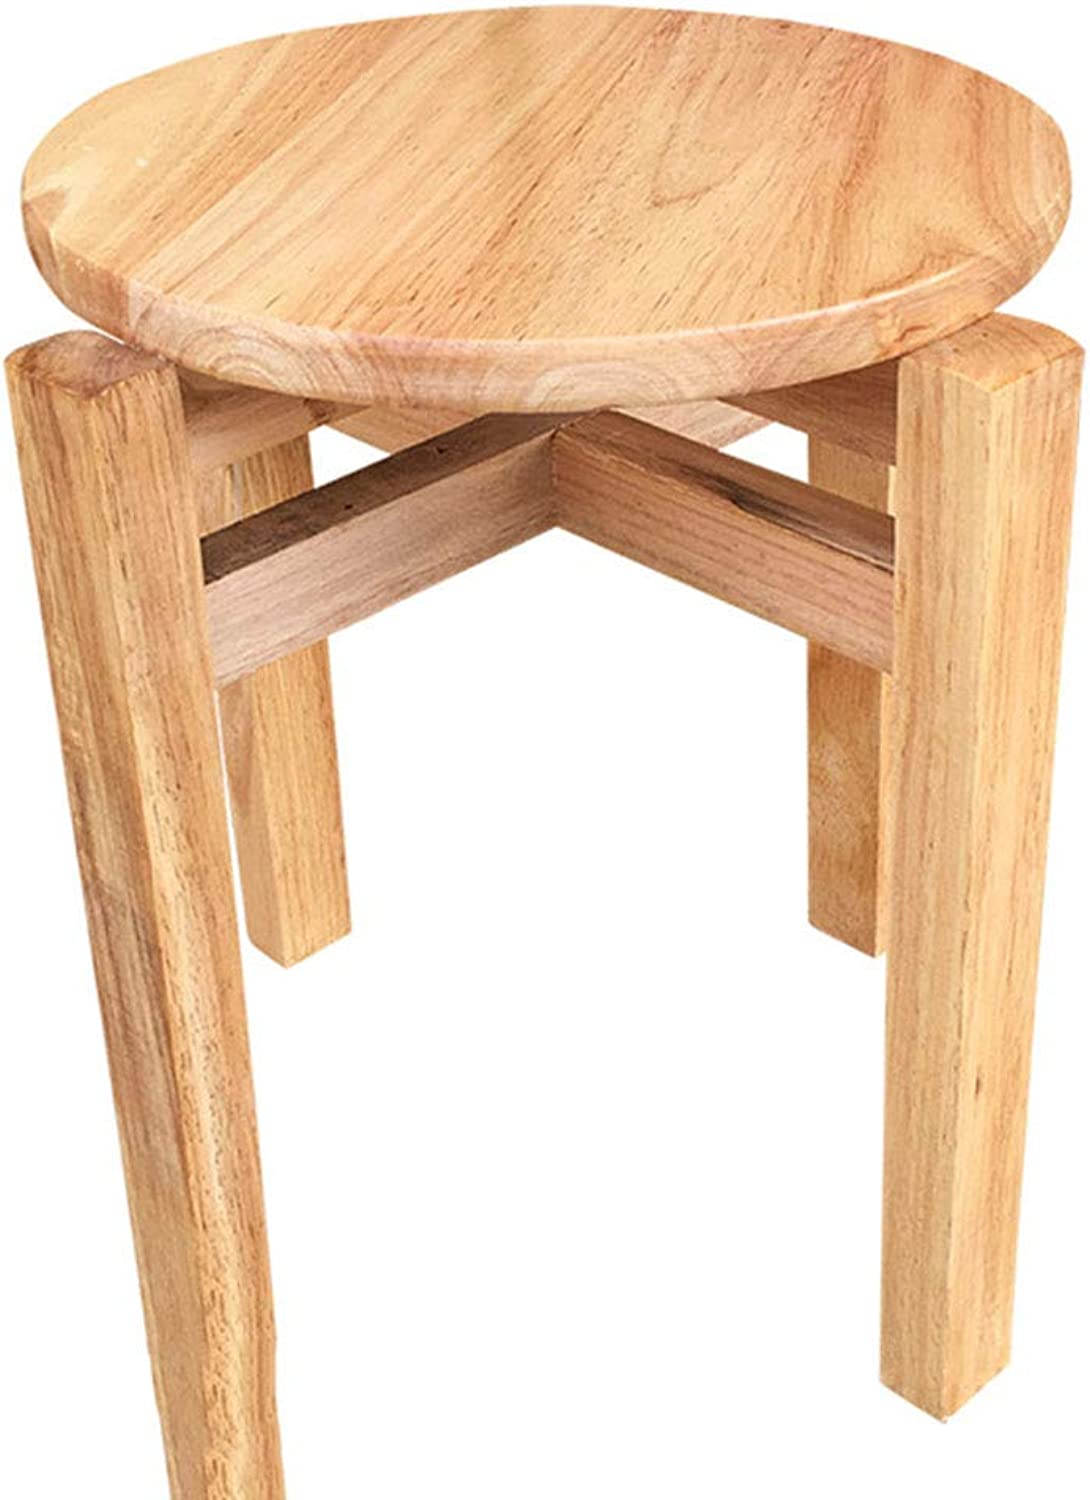 Change shoes Stool Modern Minimalist Dining Table Stool Home Leisure Bench Small Stool Solid Wood